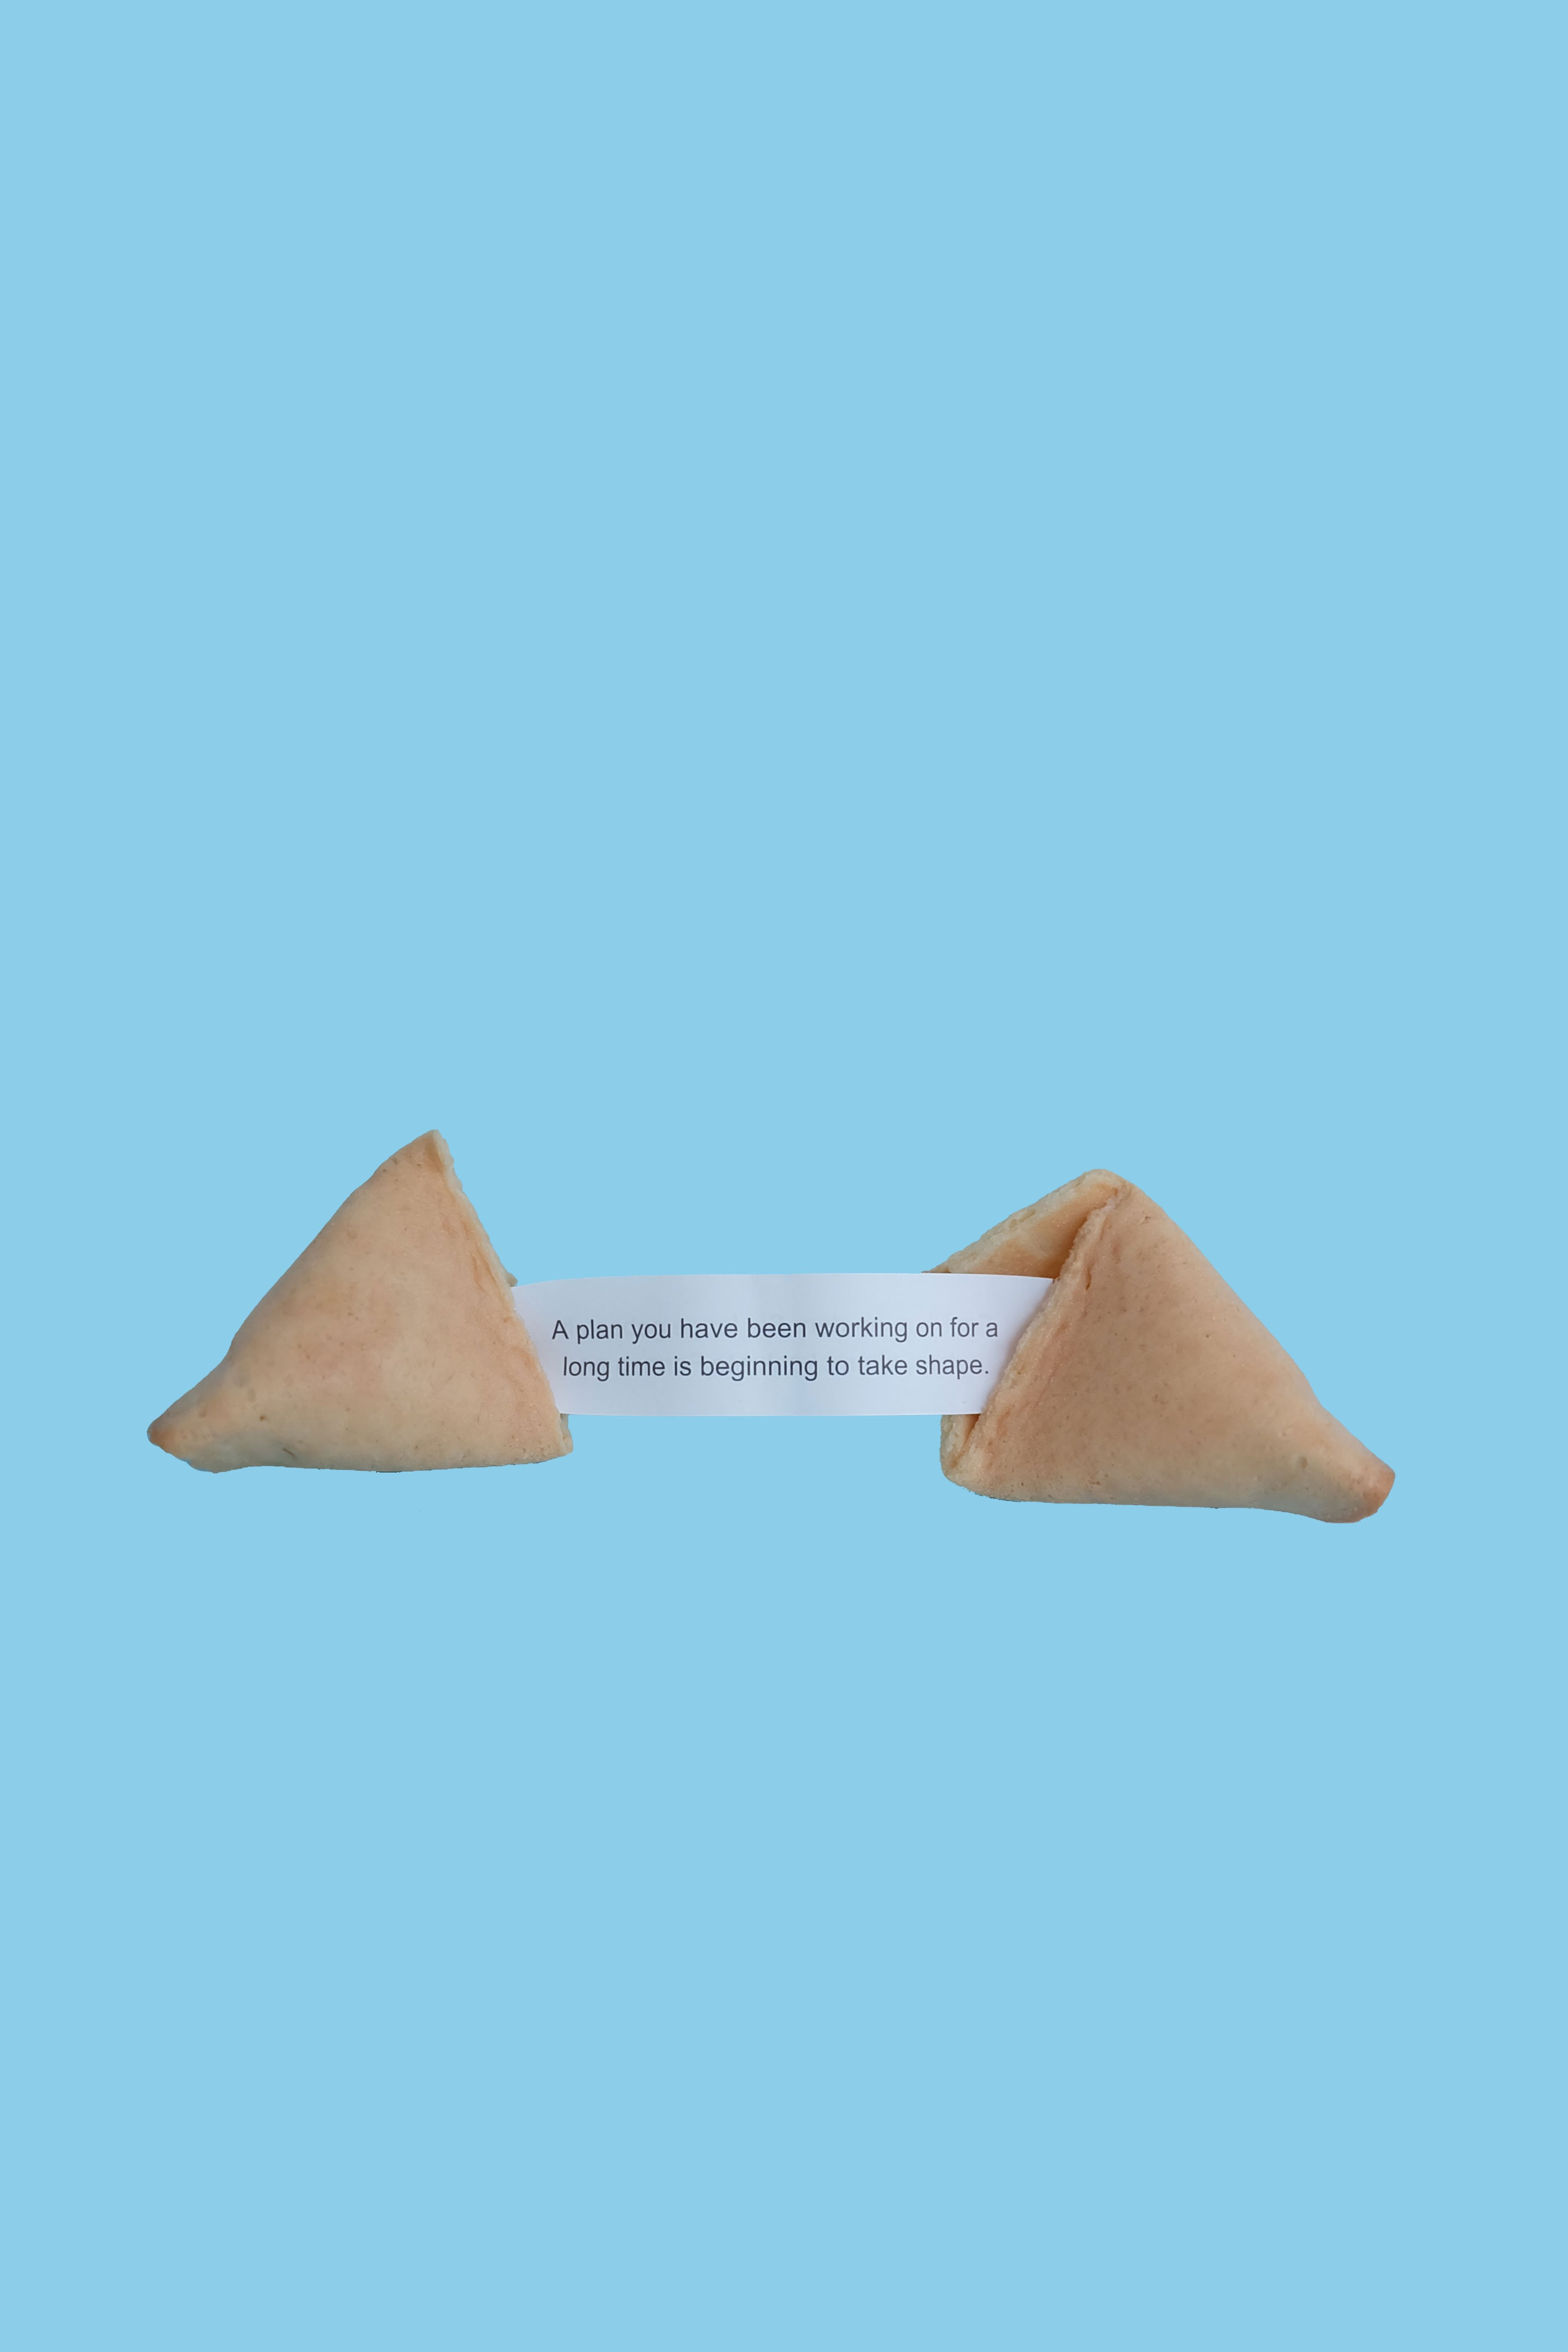 A fortune cookie: A plan you have been working on for a long time is beginning to take shape.